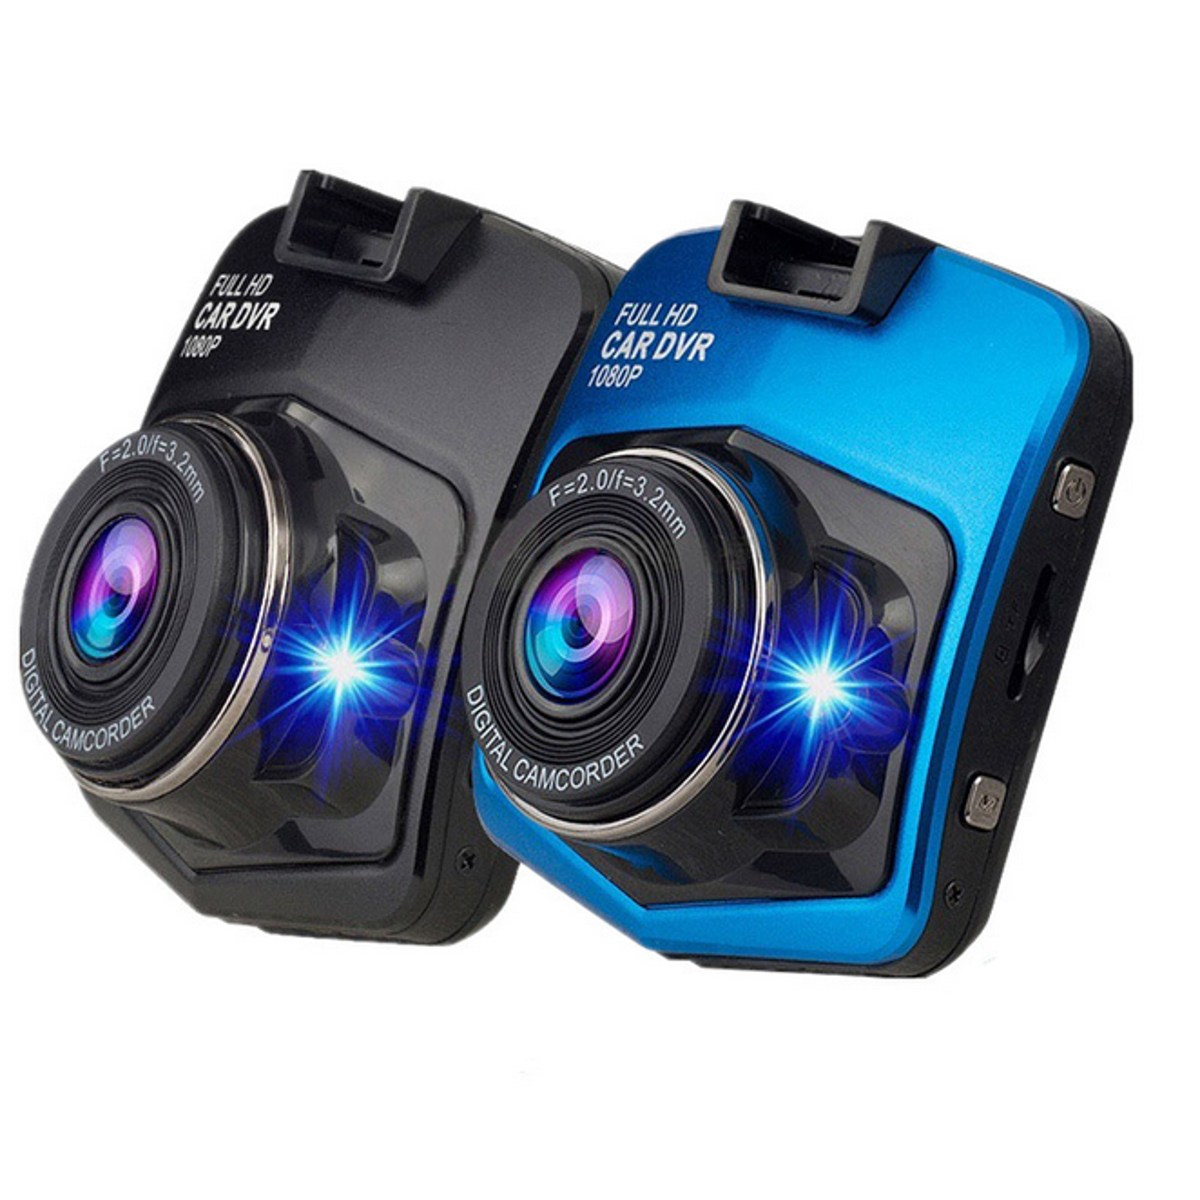 Full HD 1080P Car DVR Video Camera On Cam Dash Camera Car Camcorder 2.4Inch G-Sensor Dash Cam Recorder Night Vision car dvr dash camera full hd 1080p 2 7inch camcorder video registrator parking recorder g sensor dash cam 170 degree night vision